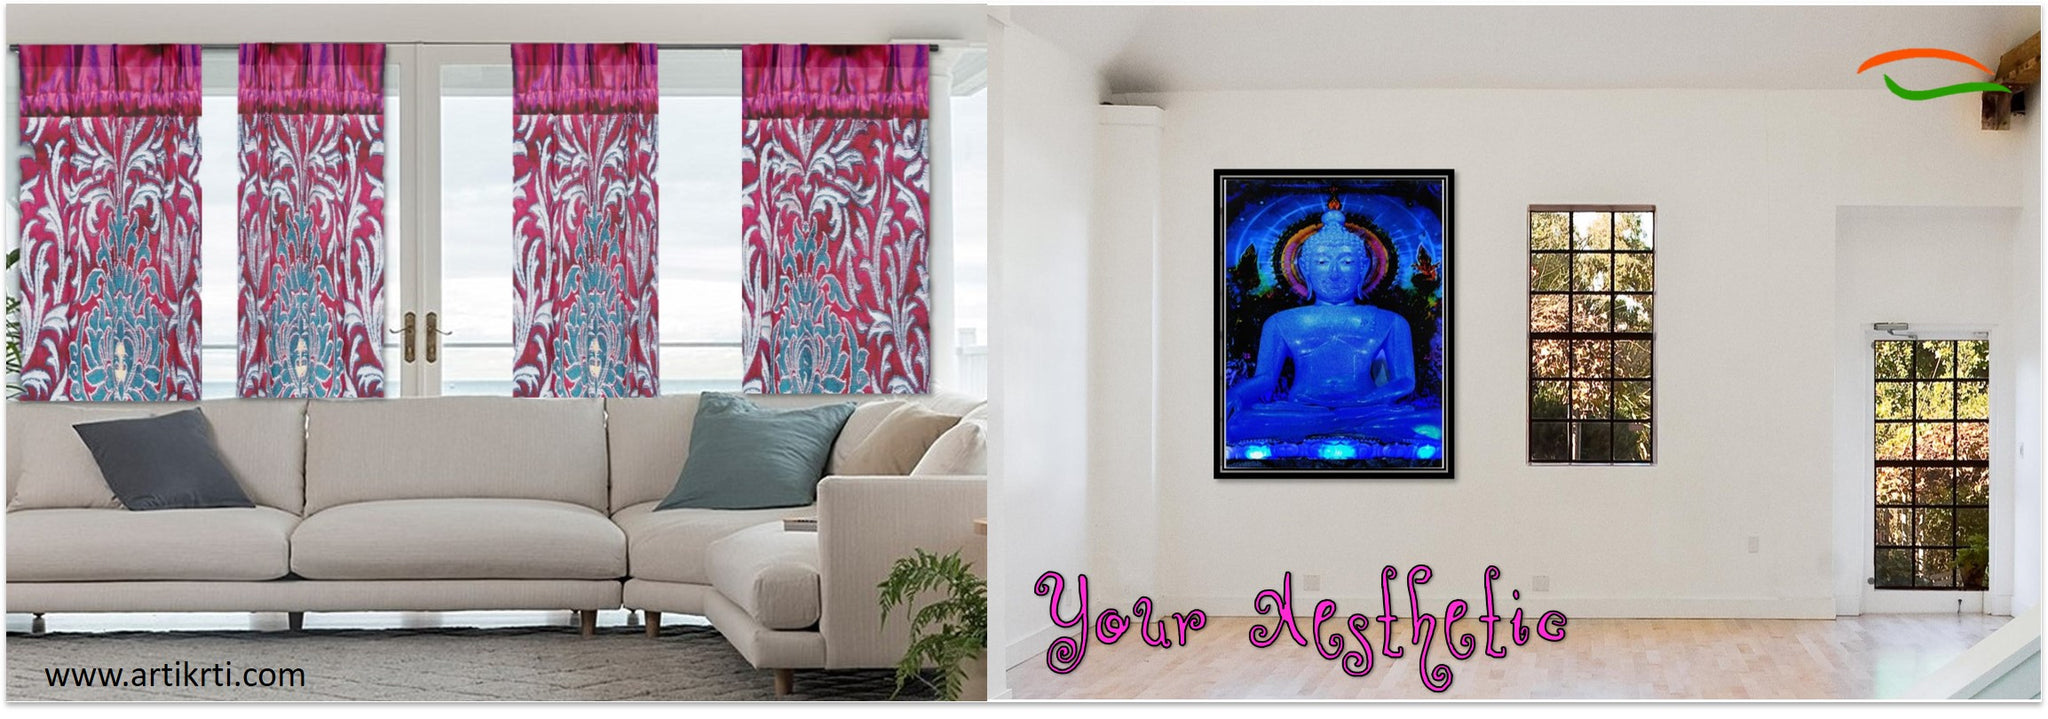 buddha-poster-yoga-decor-indian-curtains-drapes-decor-idea-artikrti